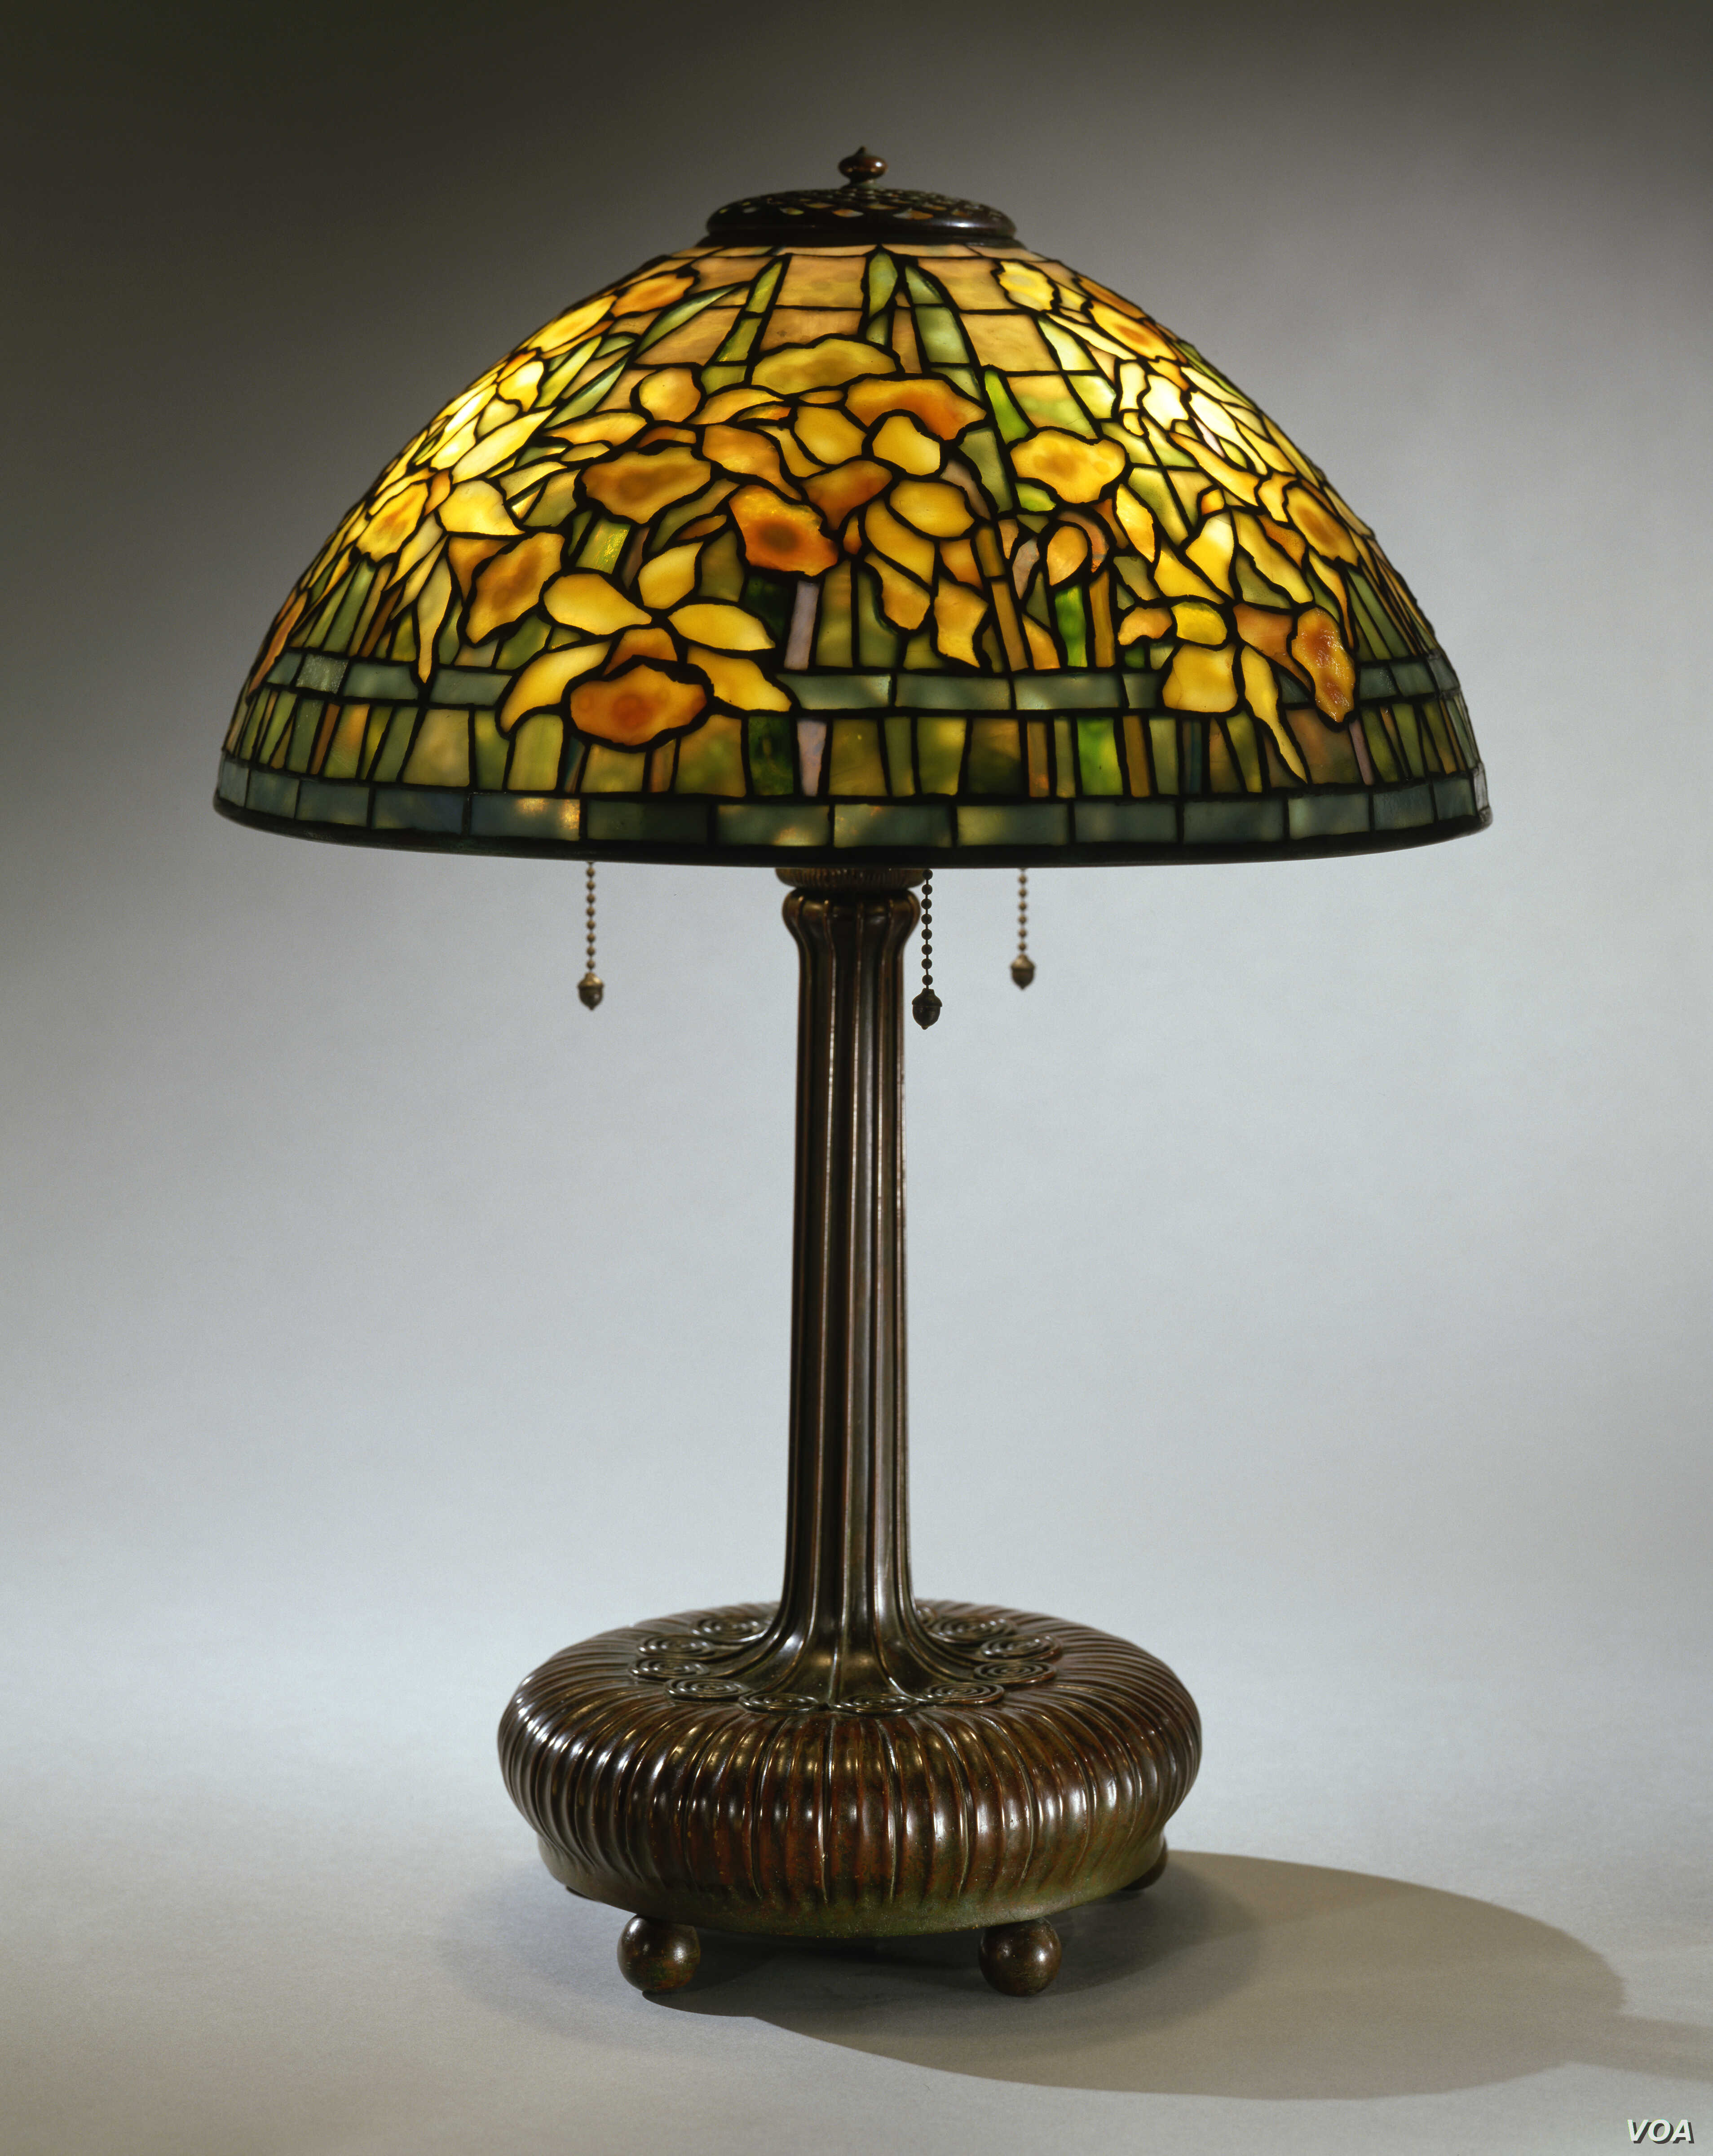 """The """"Daffodil"""" lampshade the Neustadts purchased from a second-hand shop in Greenwich Village, New York, for $12.50 is now worth between $50,000 and $75,000. (Courtesy of The Neustadt Collection of Tiffany Glass)"""